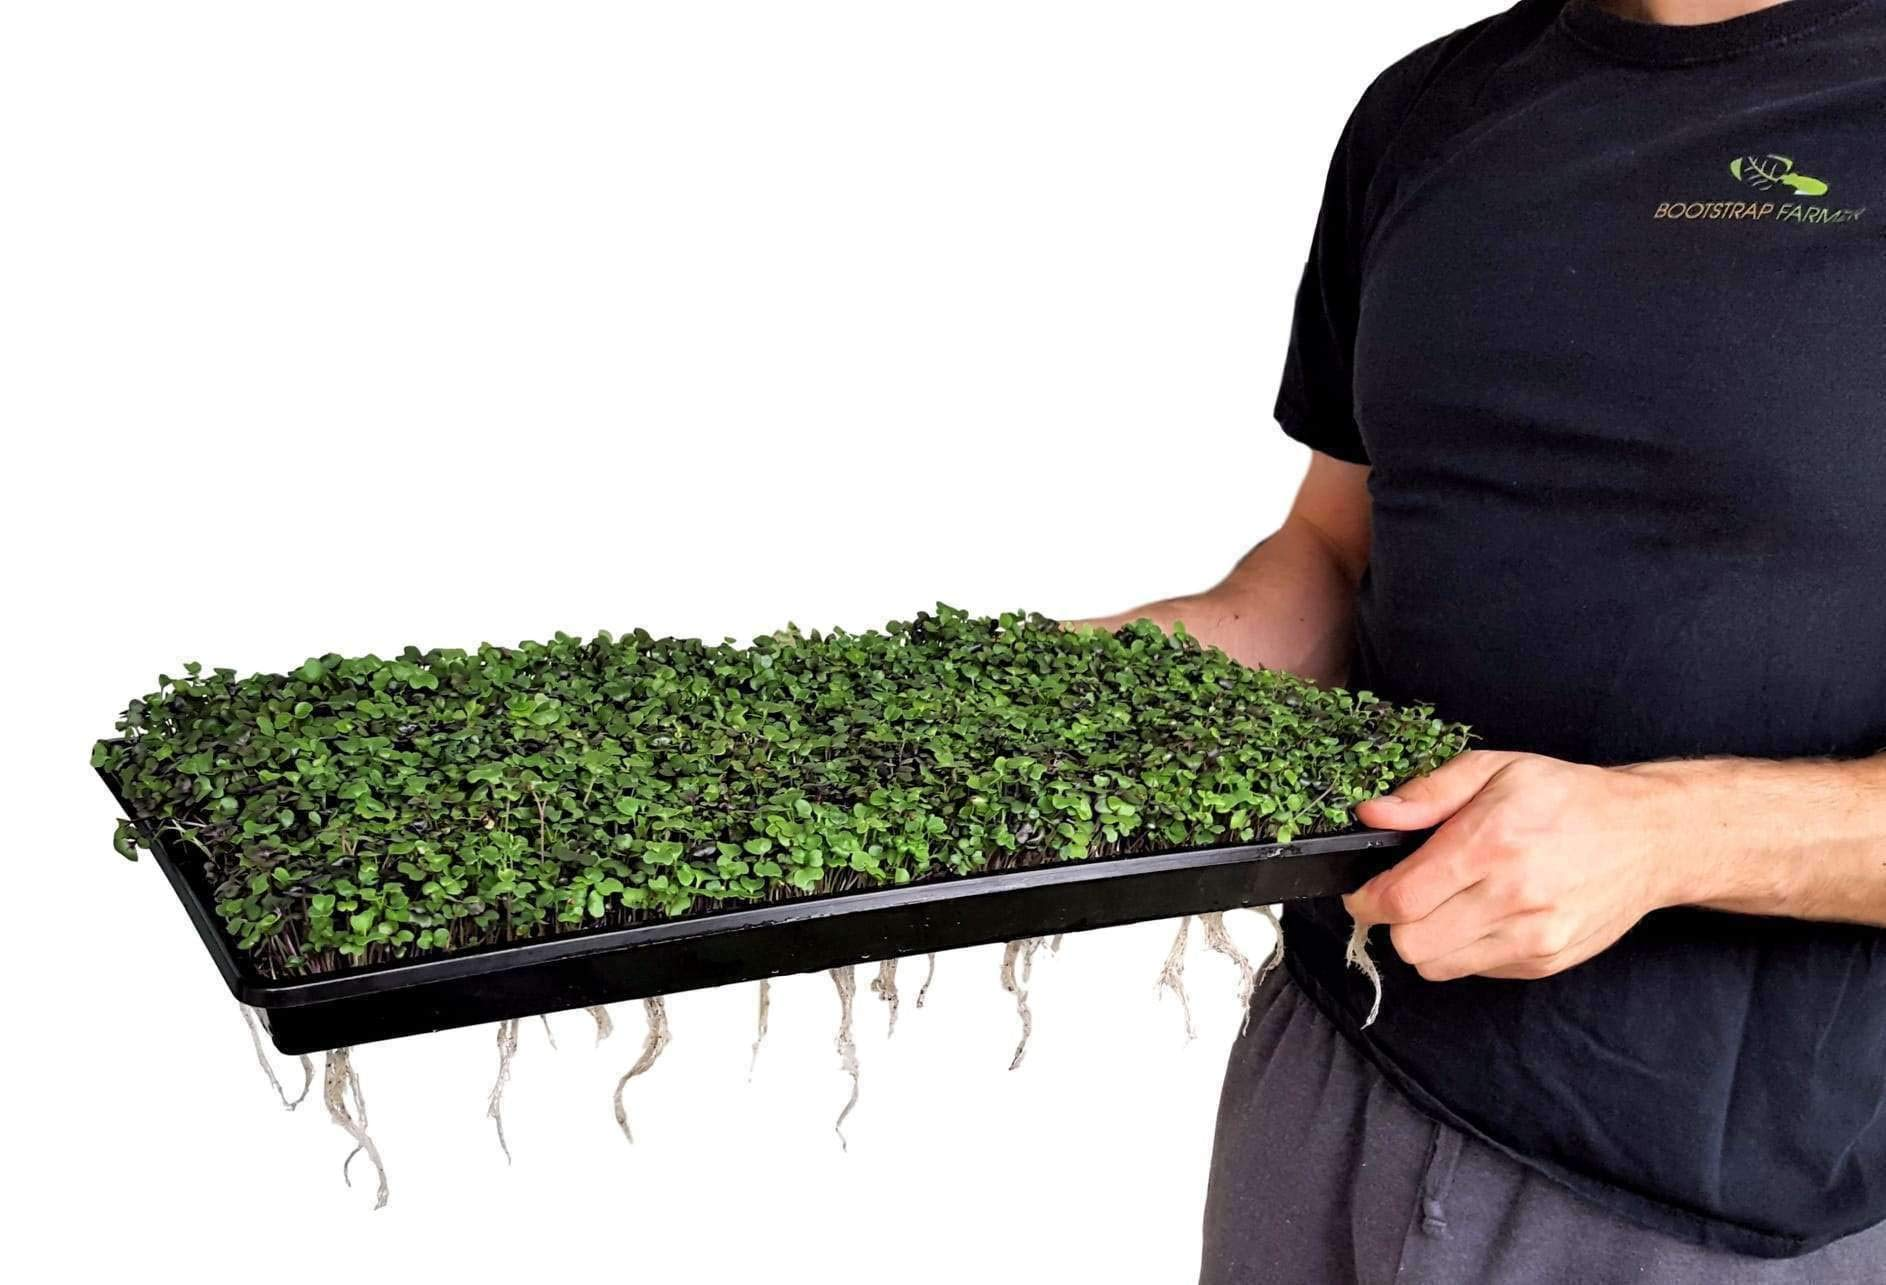 Bootstrap Farmer Microgreen Tray Hobby Starter Bundle 2 of Each - Extra Strength Microgreen Tray with Holes, Shallow 1020 No Holes, and Humidity Domes by Bootstrap Farmer